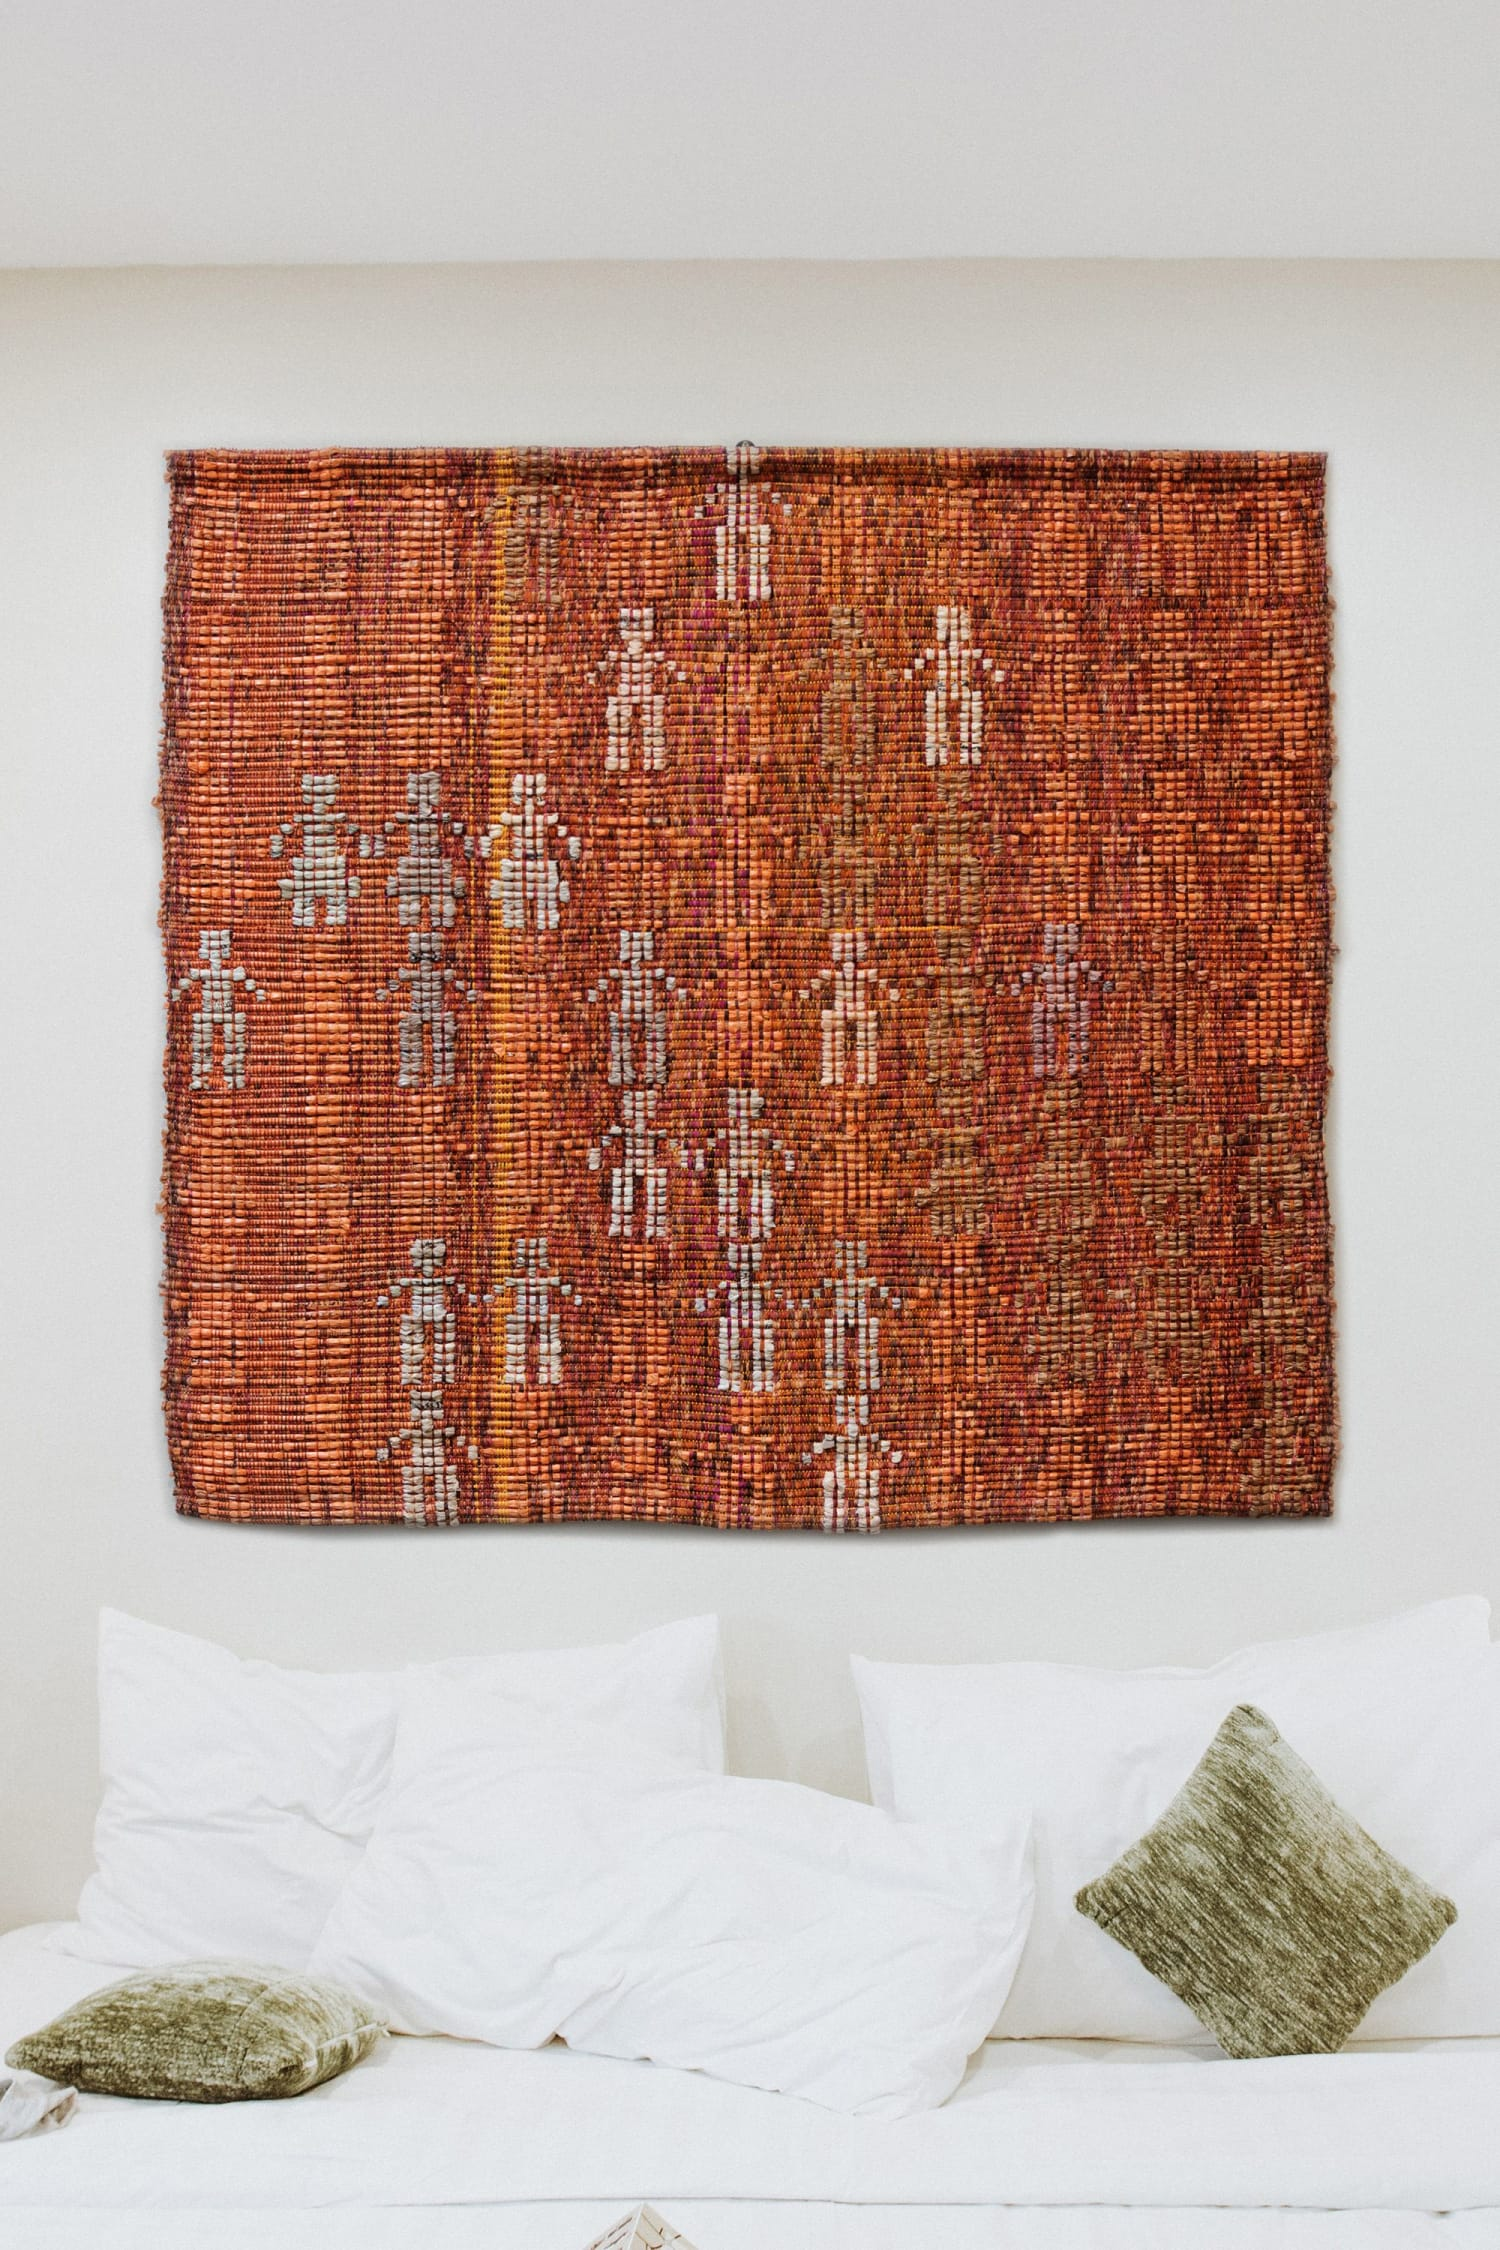 Orange handwoven wall hanging with people